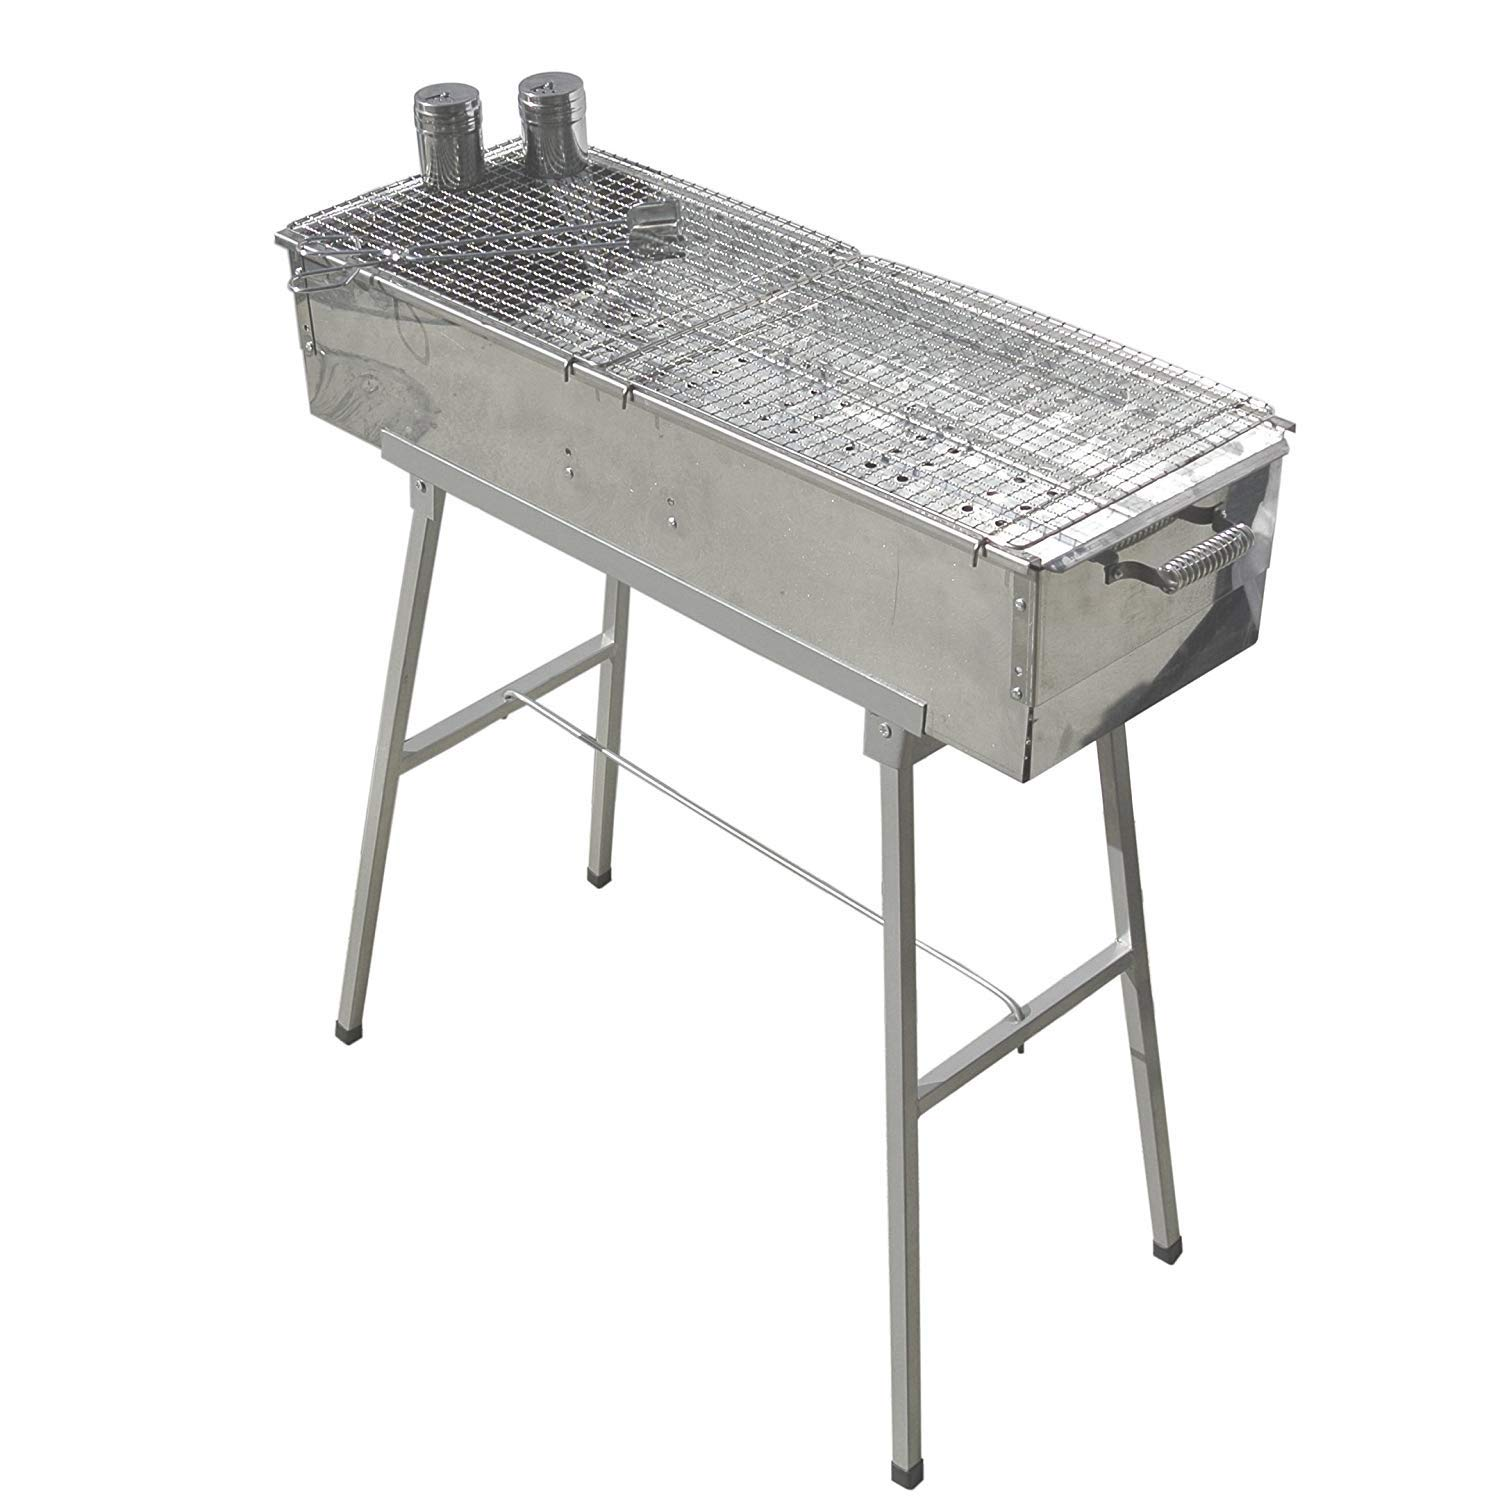 Makang Portable Stainless Steel Charcoal Grill with 2X Stainless Steel mesh Grille.